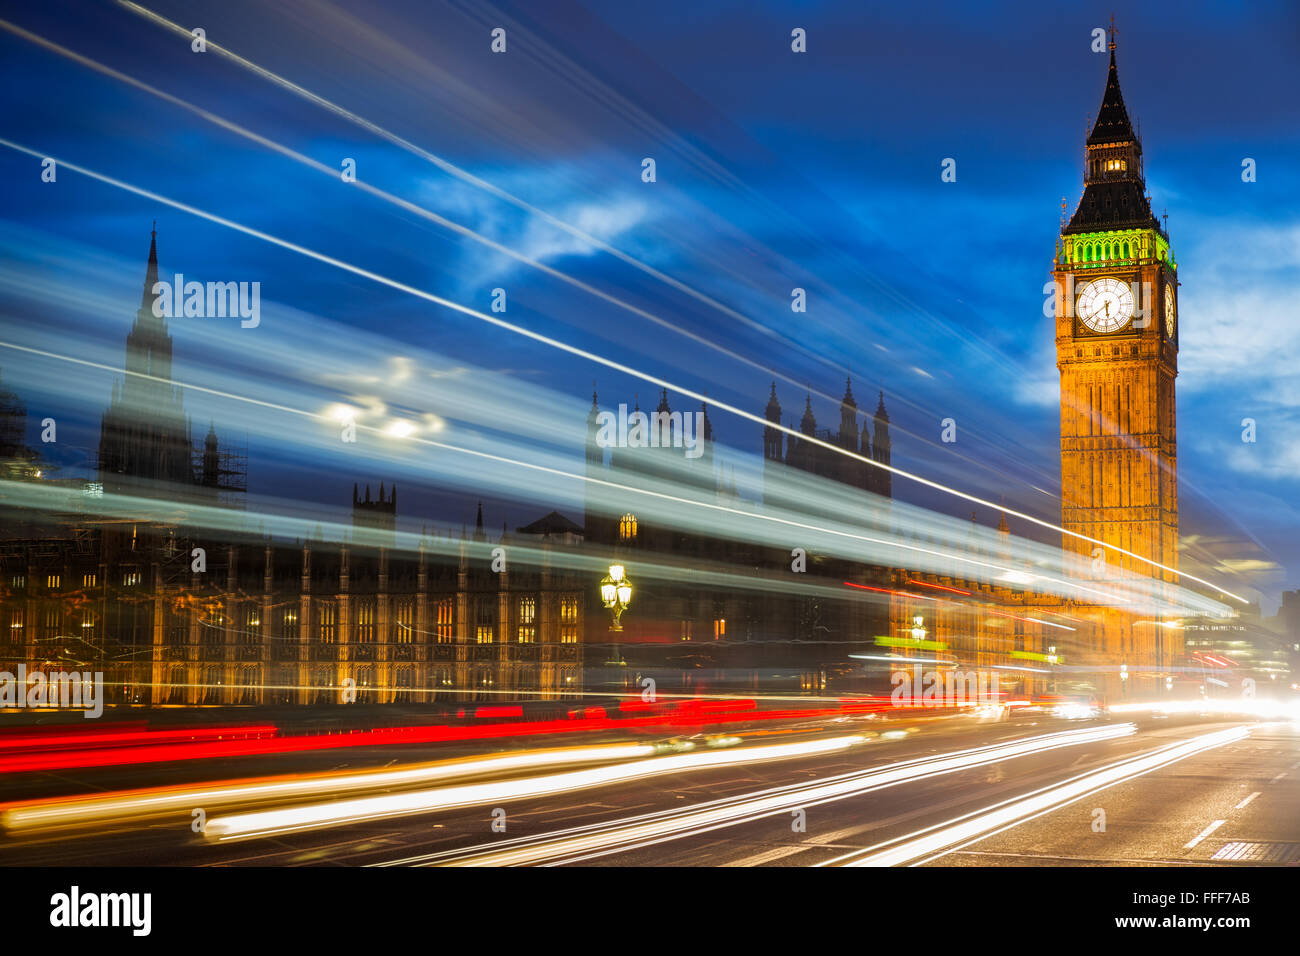 Big Ben en el puente de Westminster, London, UK Imagen De Stock